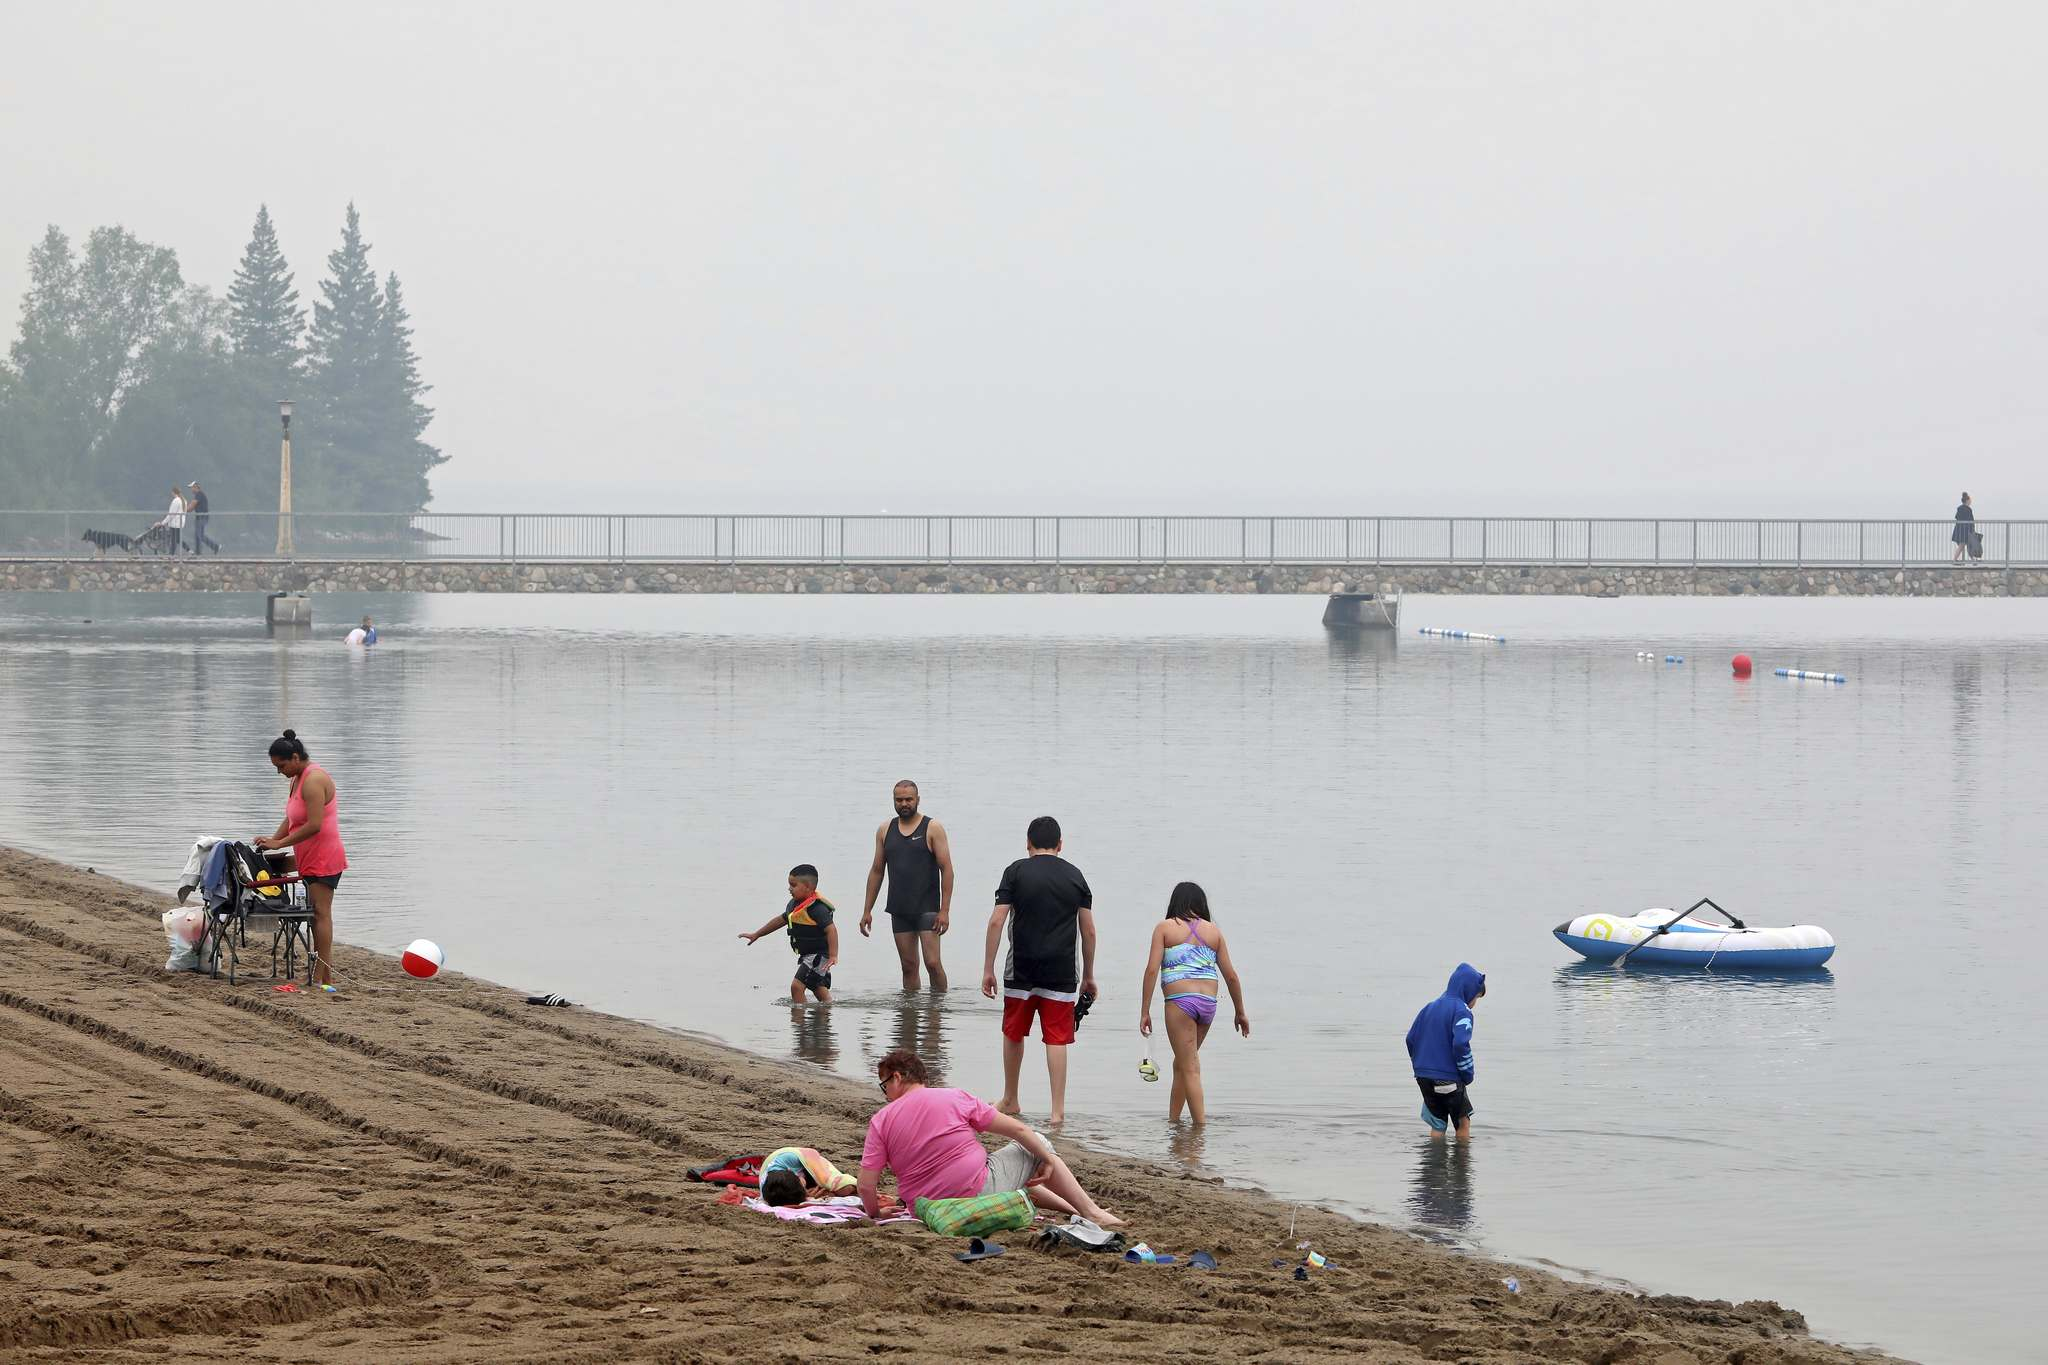 The beach in Wasagaming was sparsely populated on a drizzly Tuesday as heavy smoke from forest fires drove down temperatures in southern Manitoba. (Photos by Tim Smith/The Brandon Sun)